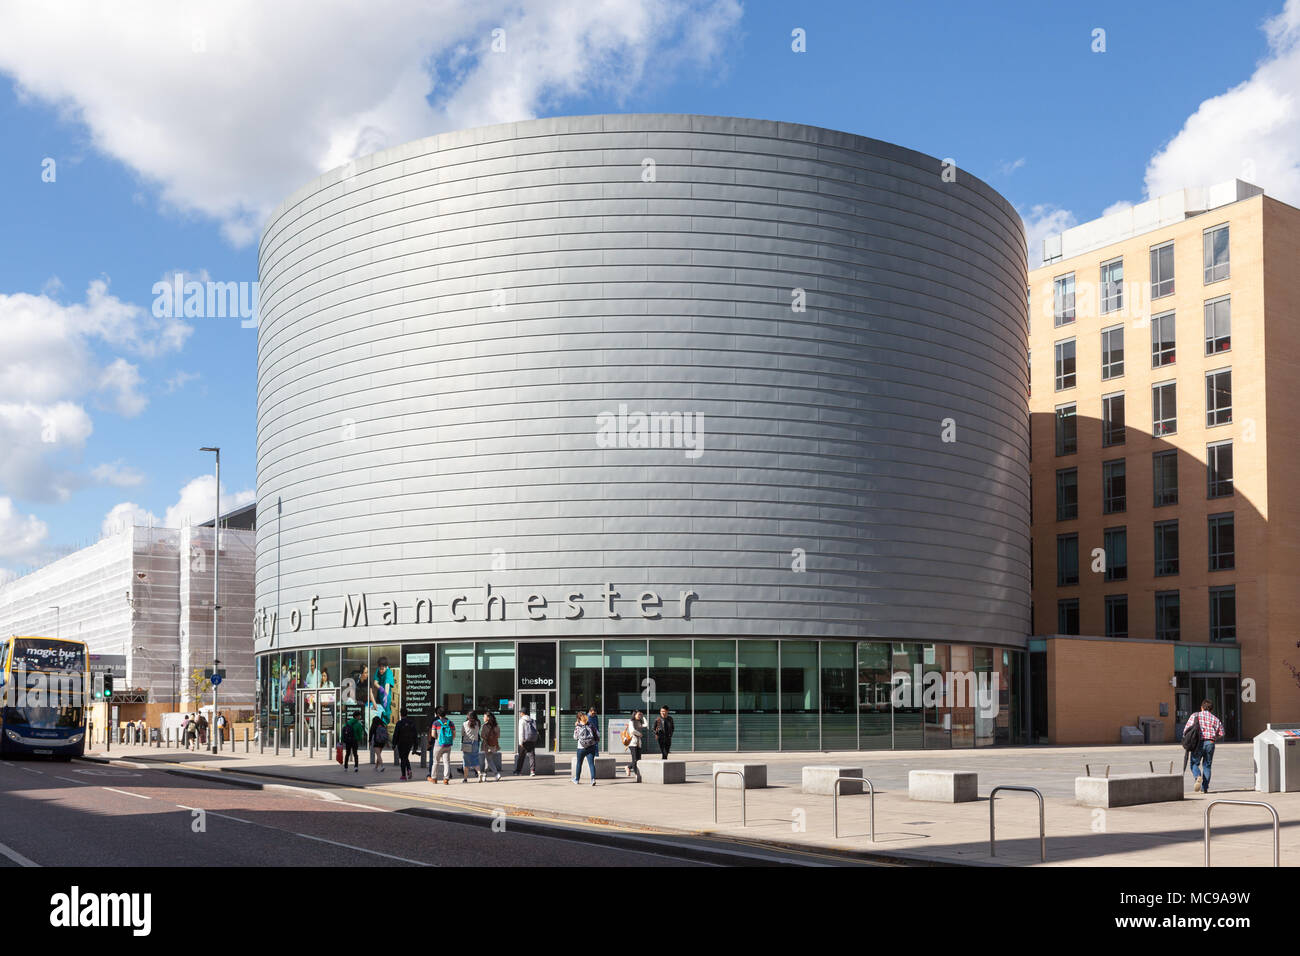 The large, drum-shaped building of The University of Manchester, University Place, Oxford Road, Manchester. - Stock Image